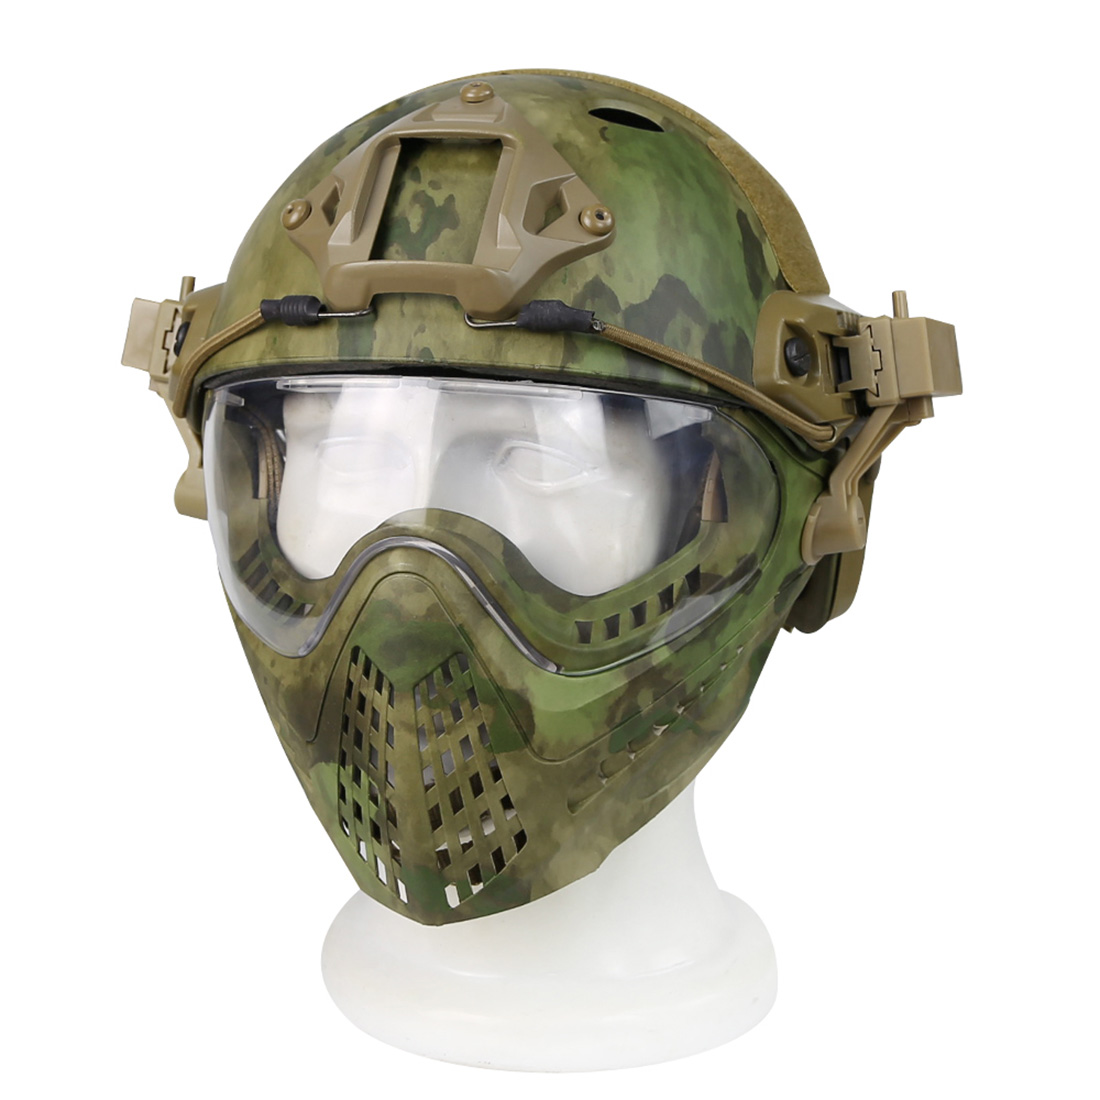 купить Surwish Navigator Tactics Camouflage Protecting Helmet for Nerf/ for Airsoft Outdoors Activities по цене 6358.45 рублей